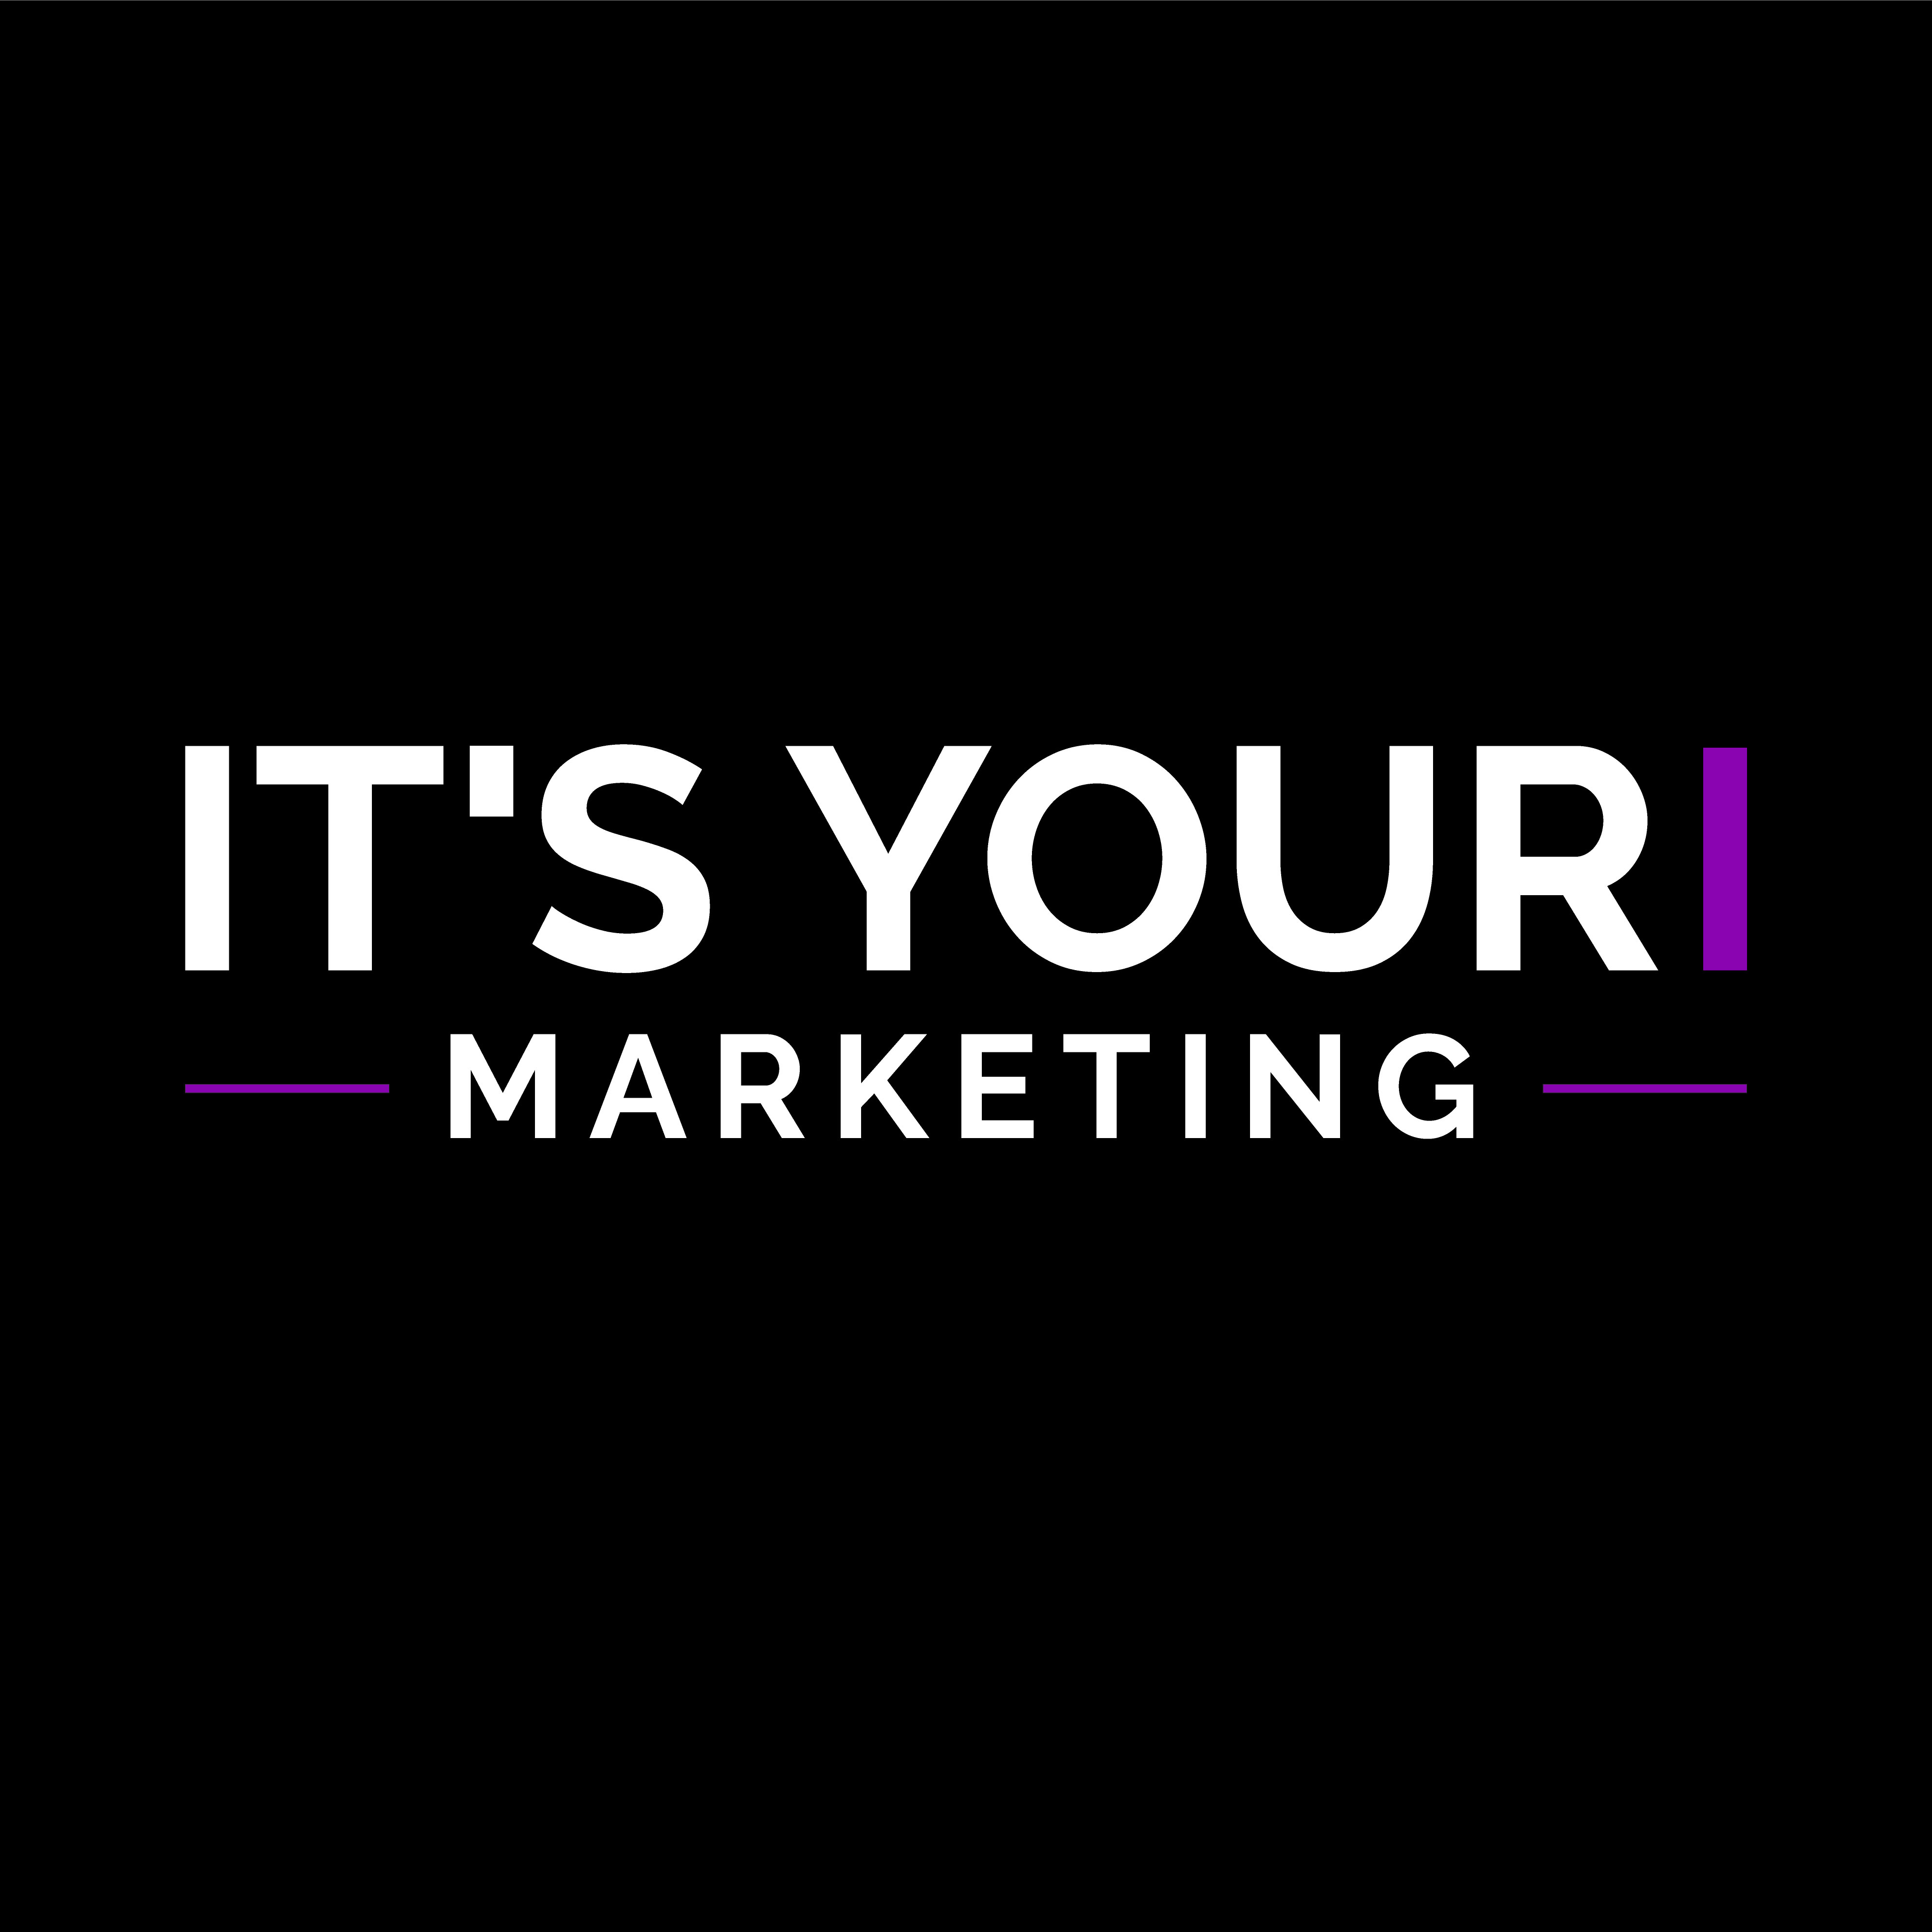 IT´S YOUR MARKETING